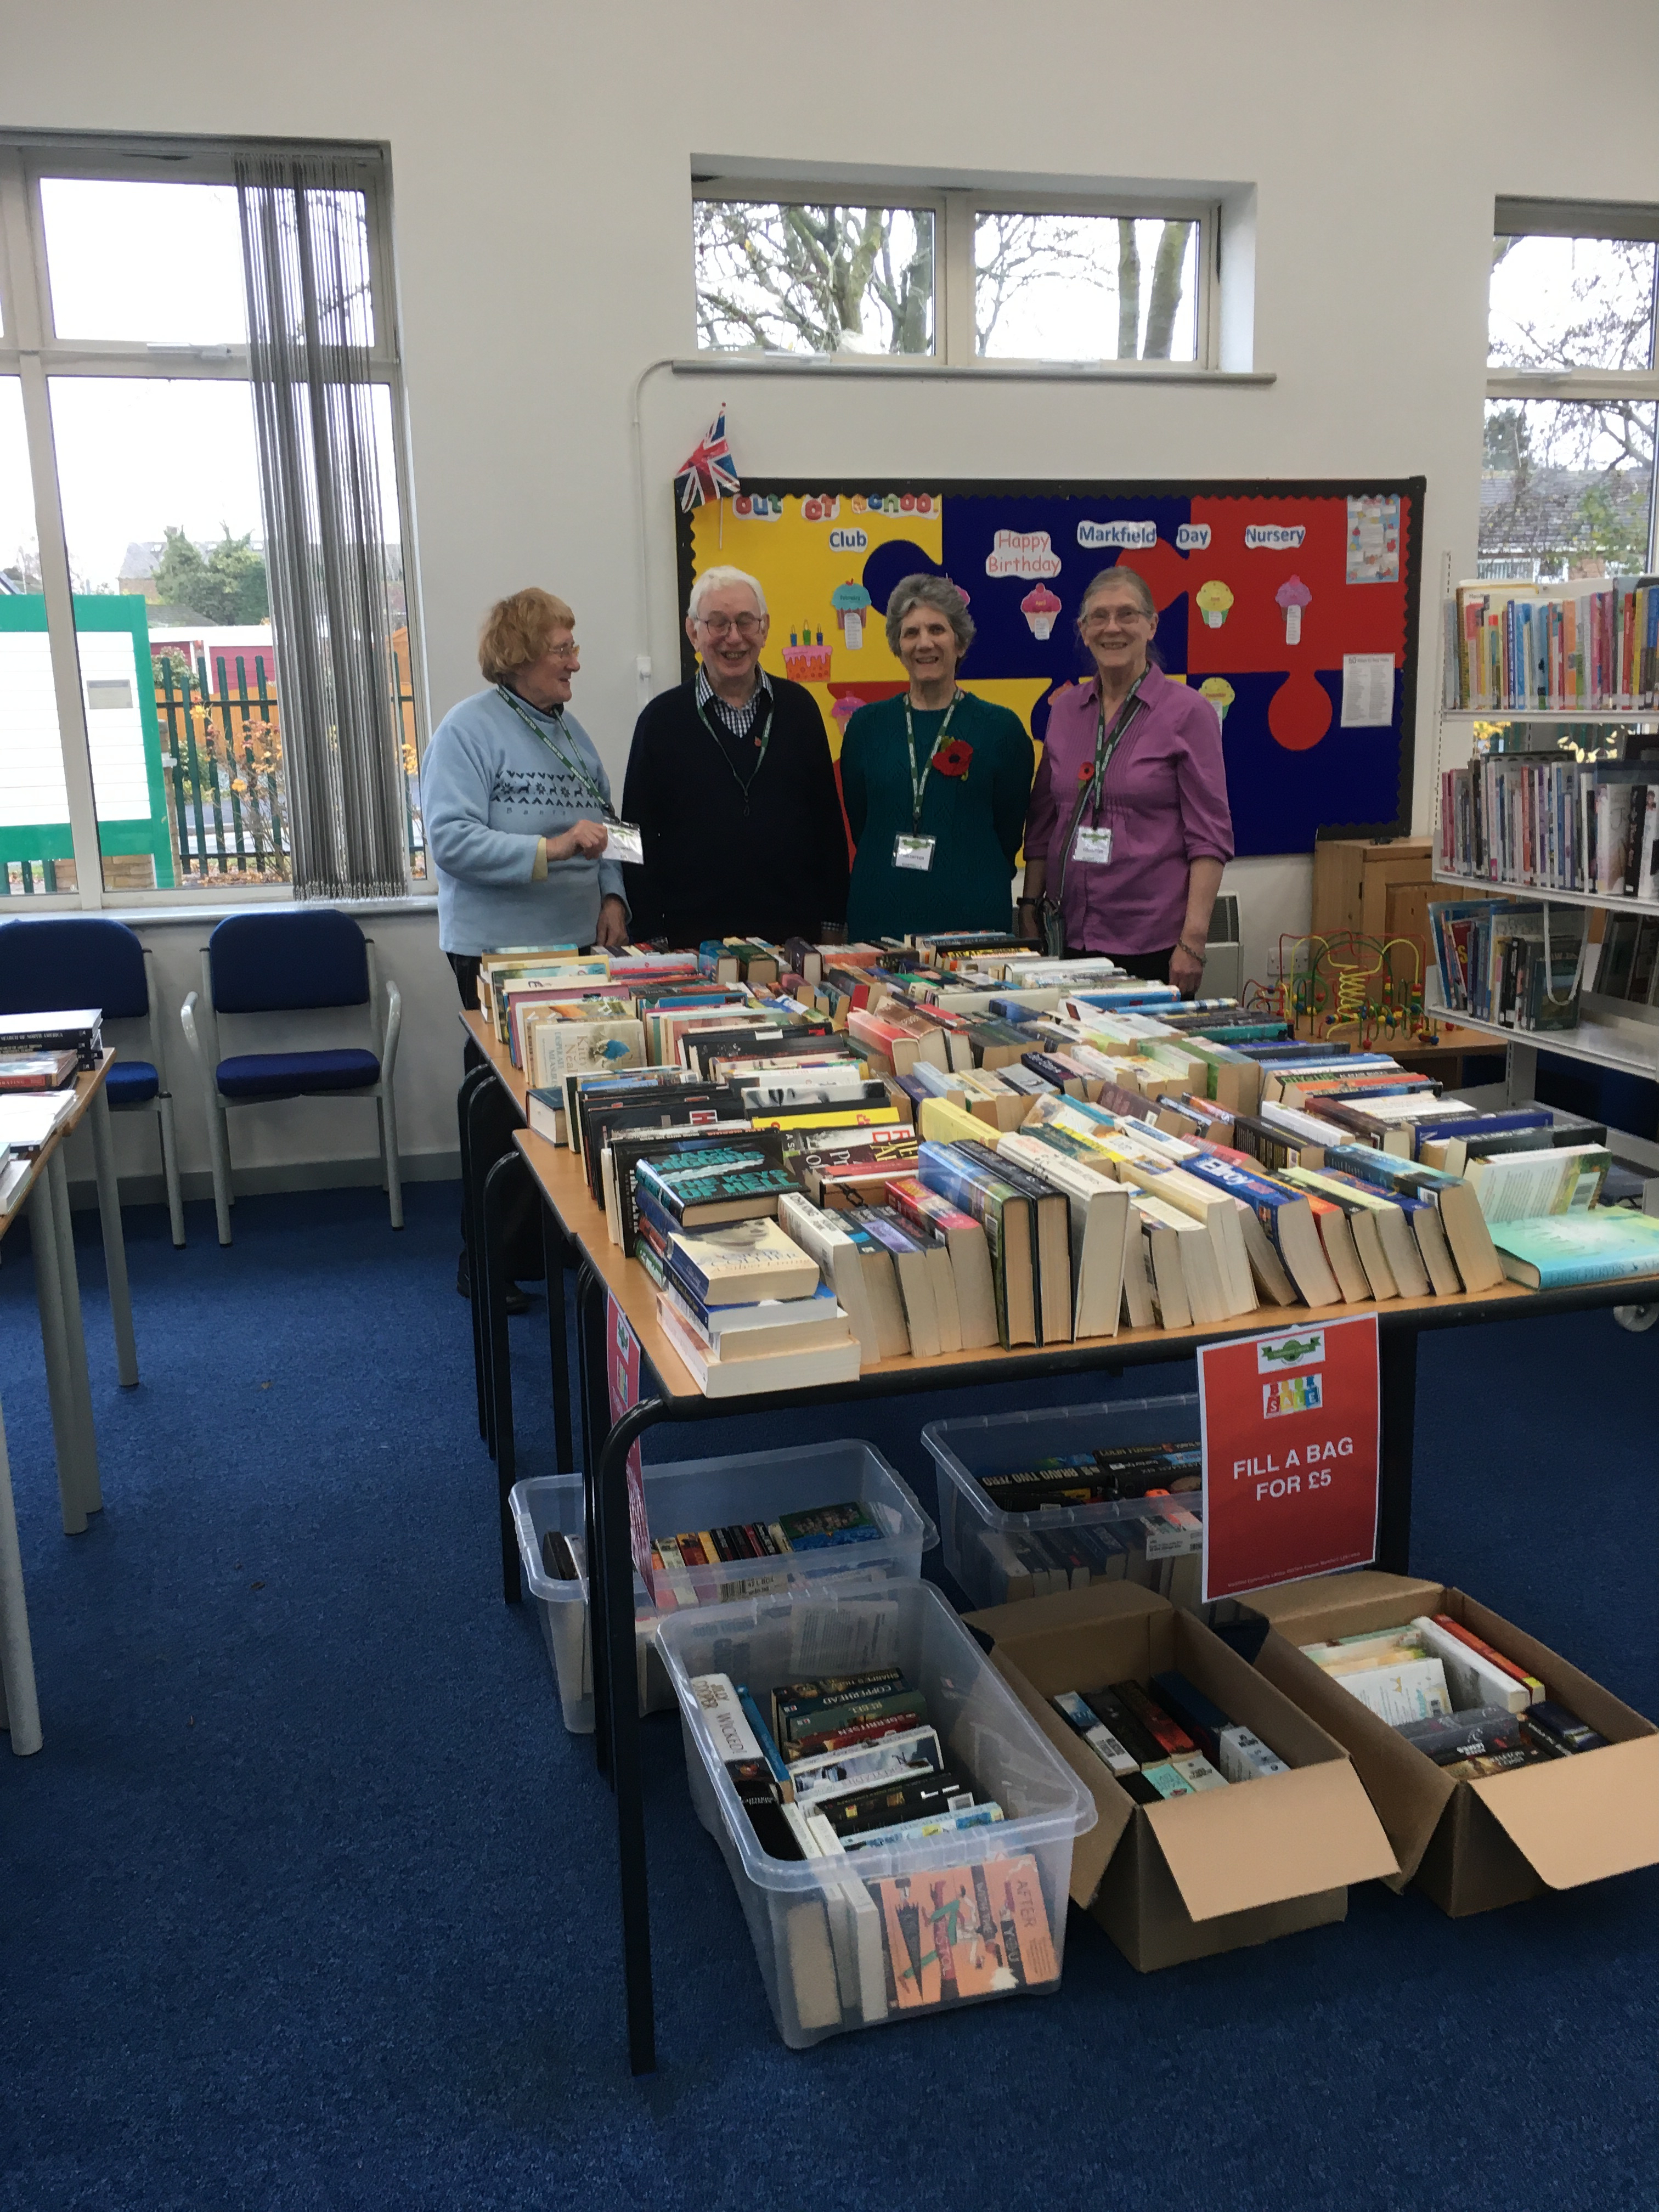 Book sale at Markfield Library